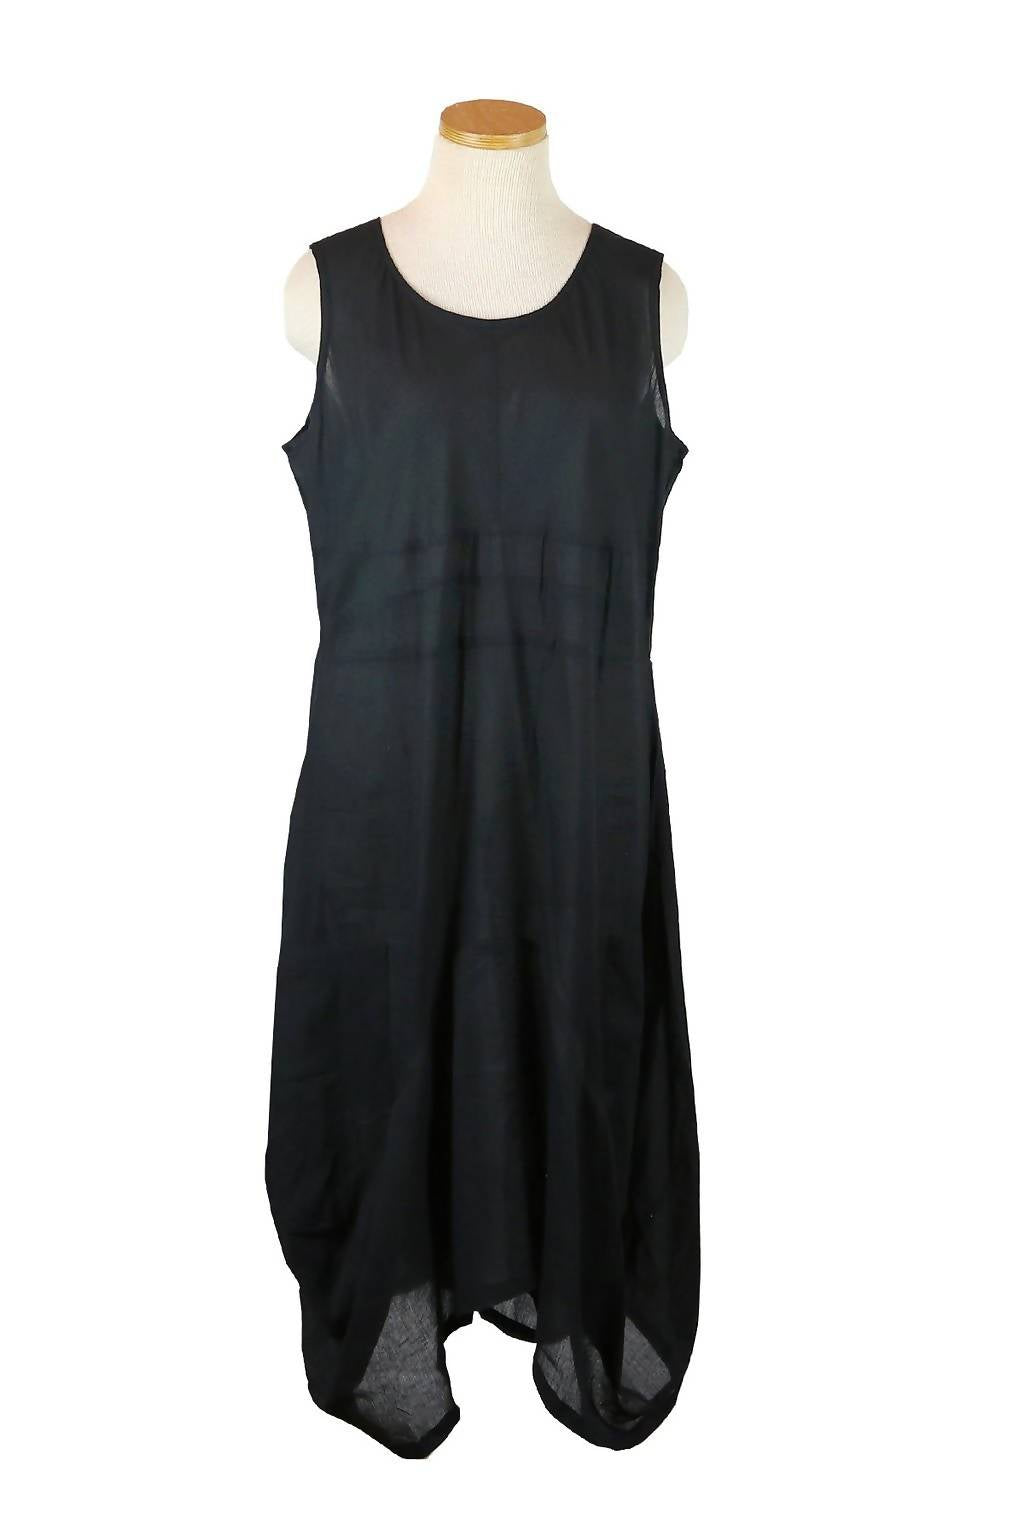 Solid Black Tank Dress